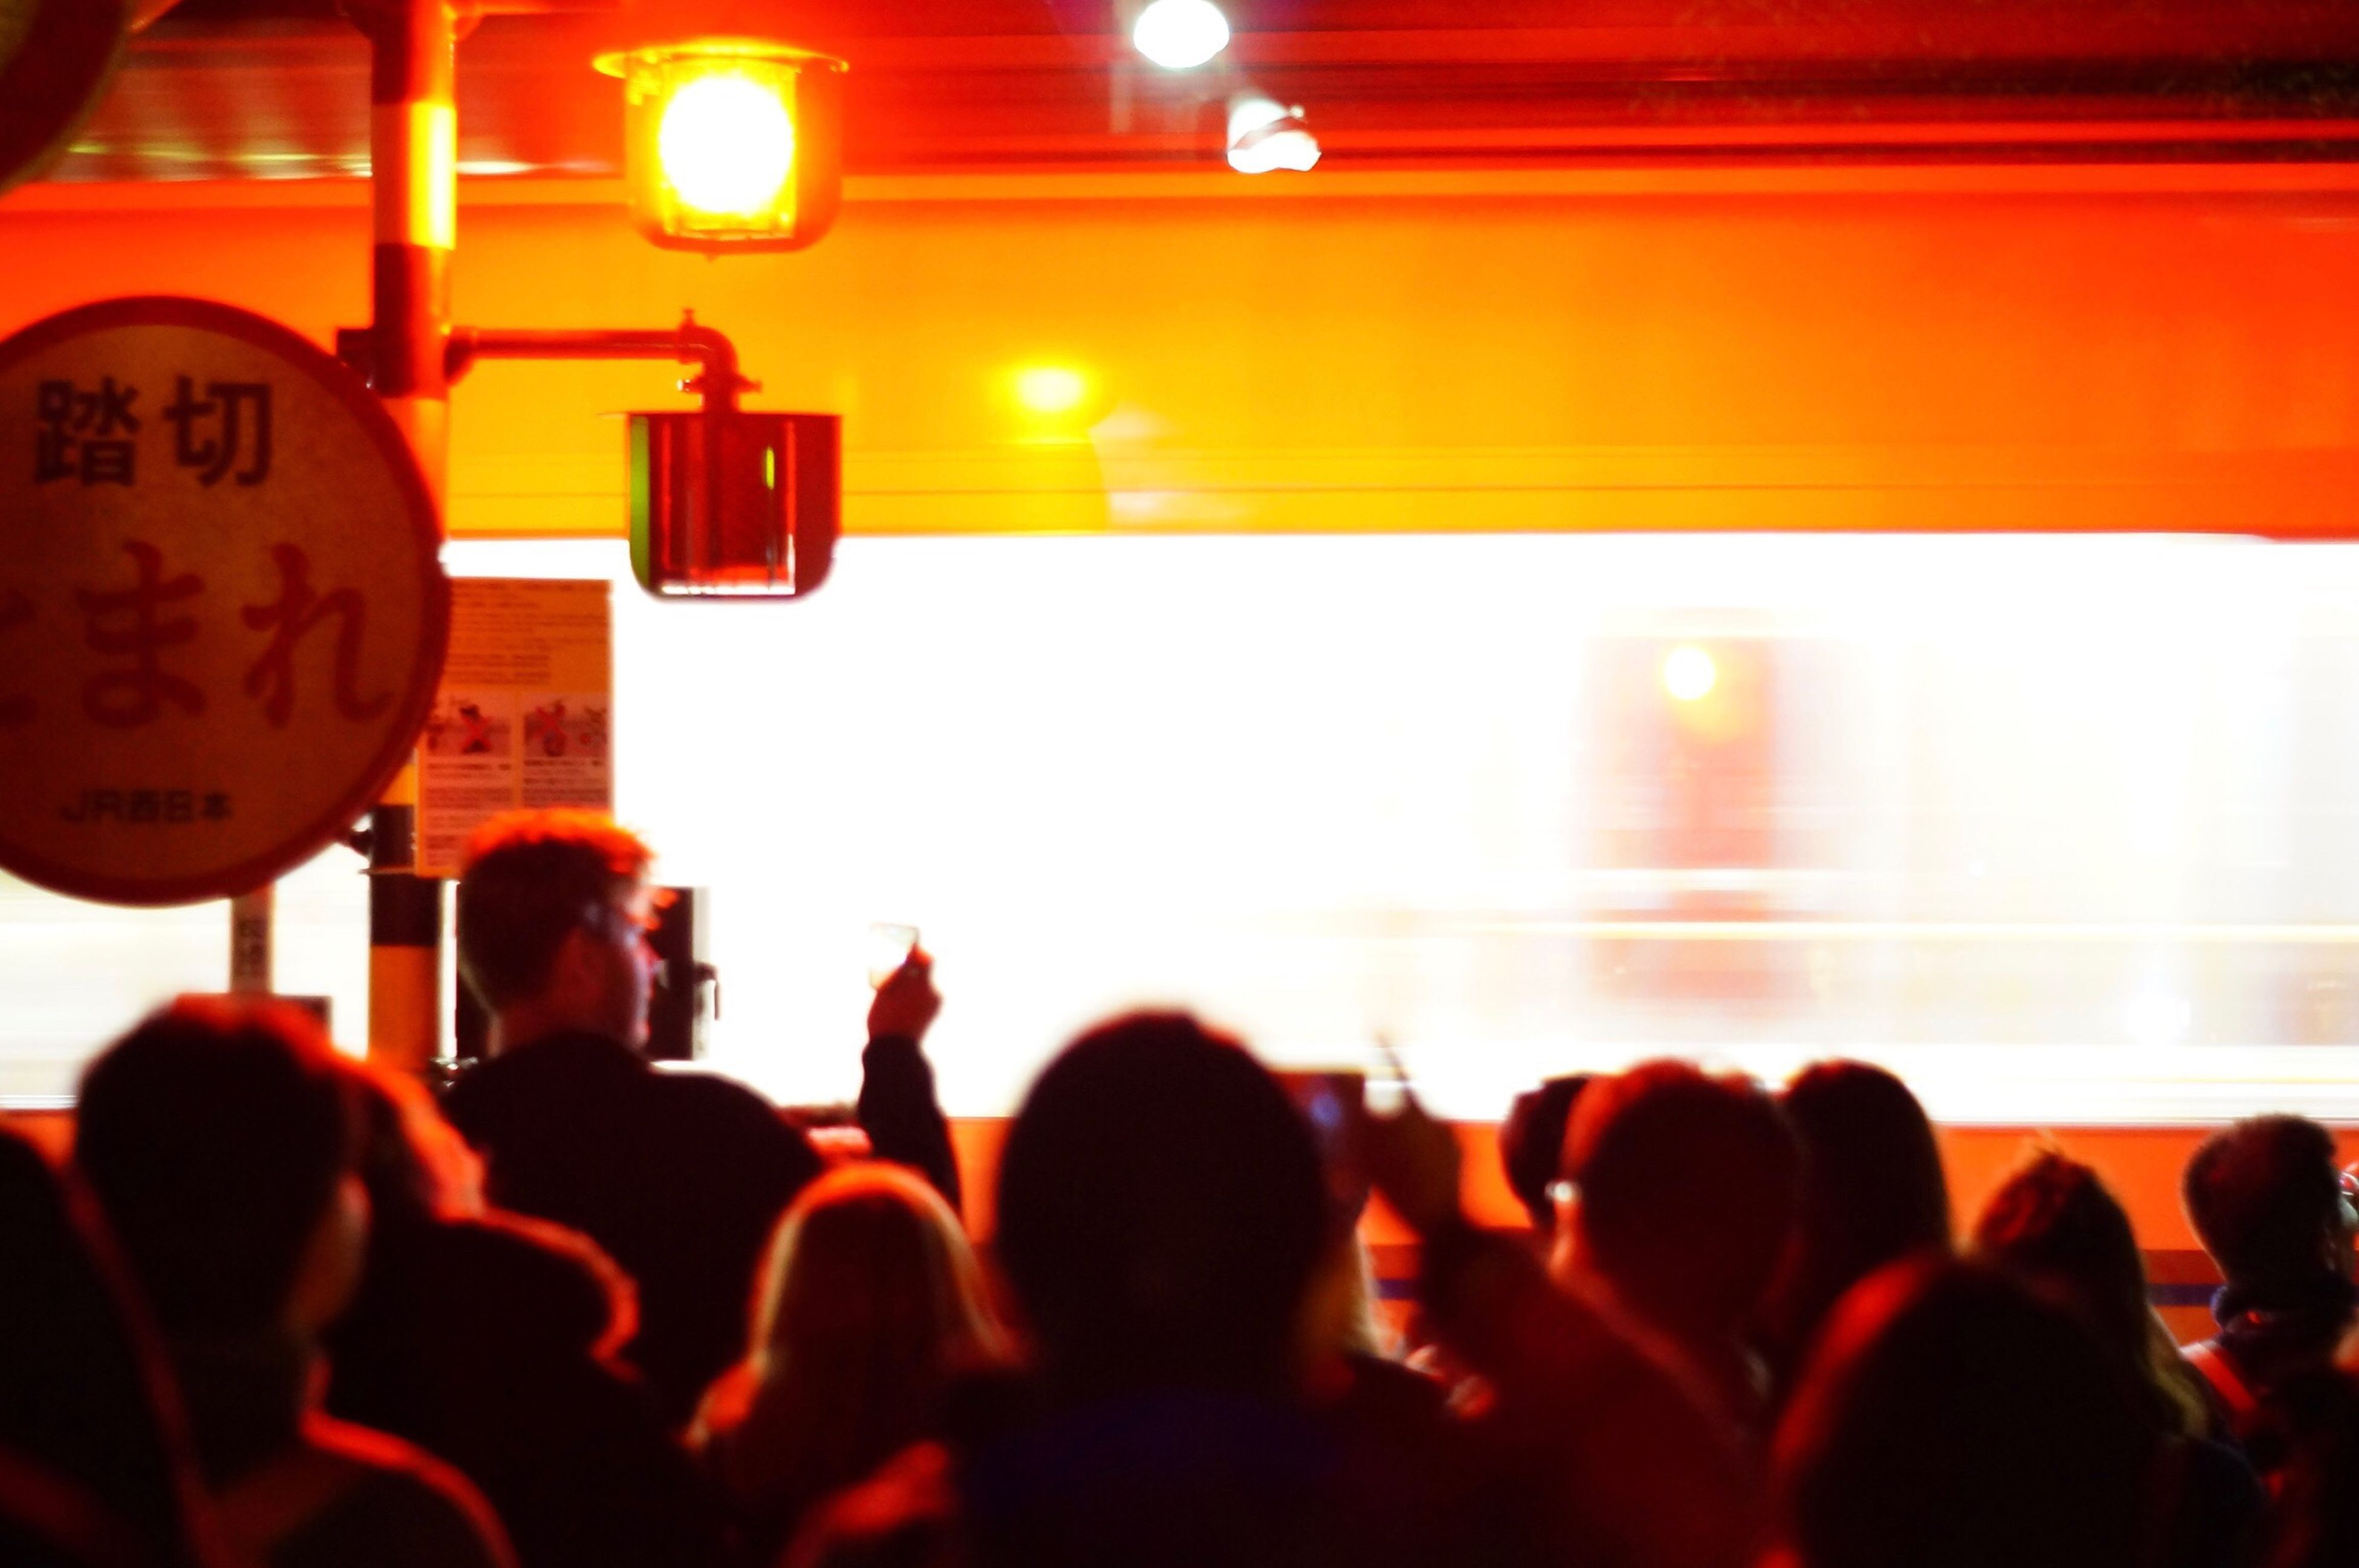 indoors, illuminated, large group of people, lighting equipment, men, light - natural phenomenon, group of people, crowd, person, performance, nightlife, spotlight, social gathering, back lit, journey